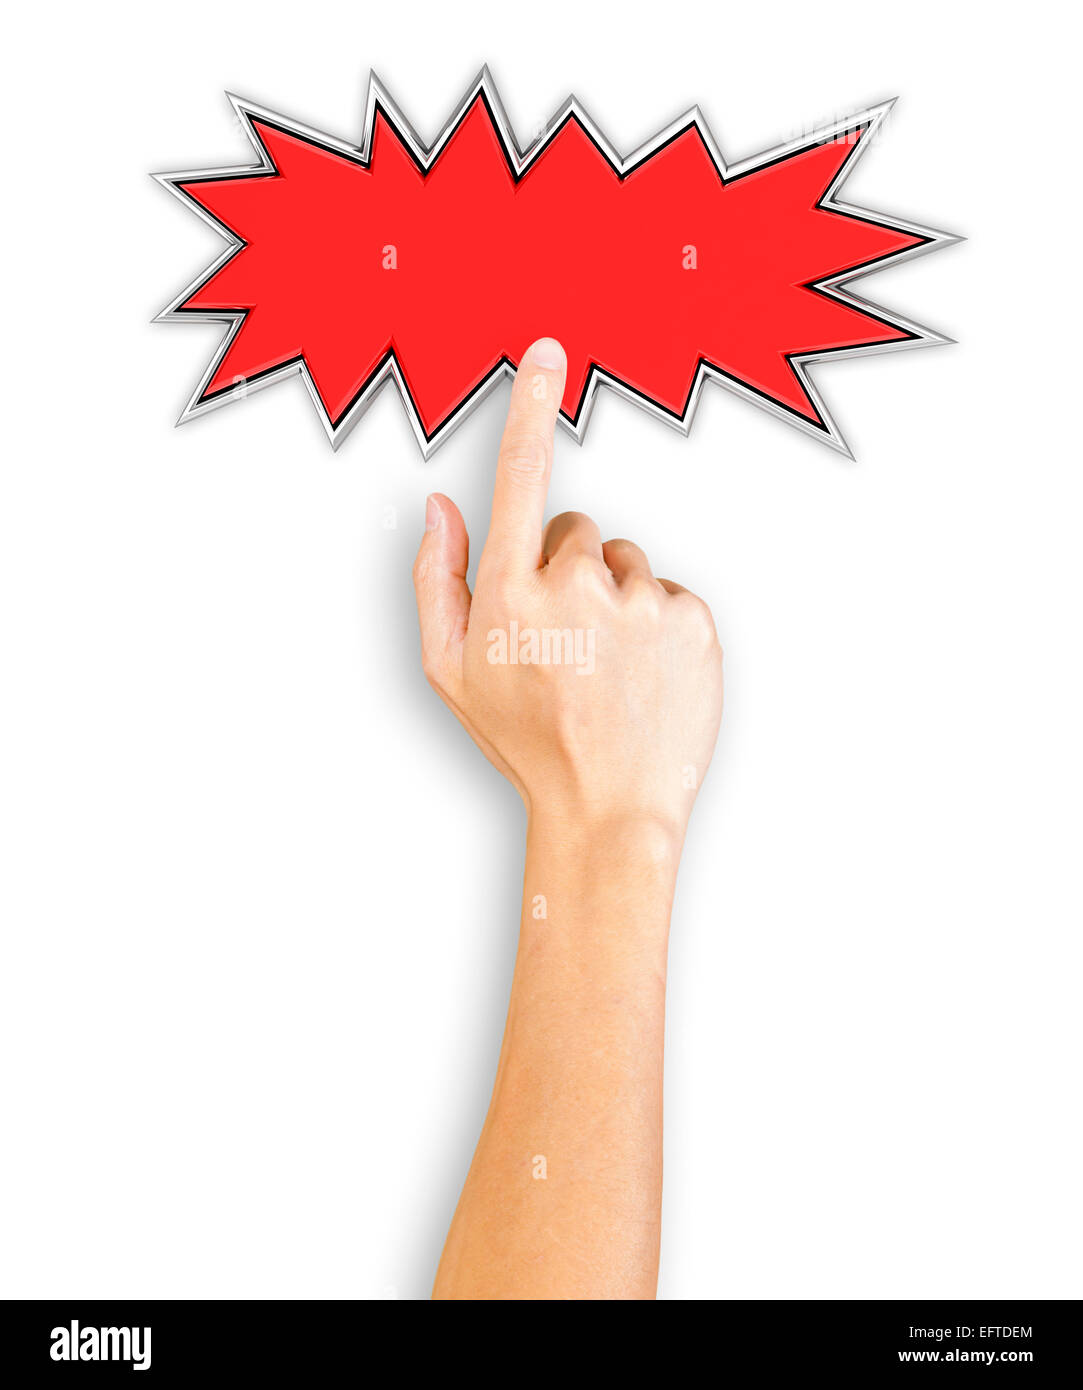 Hand clicking a starburst button, top view - Stock Image